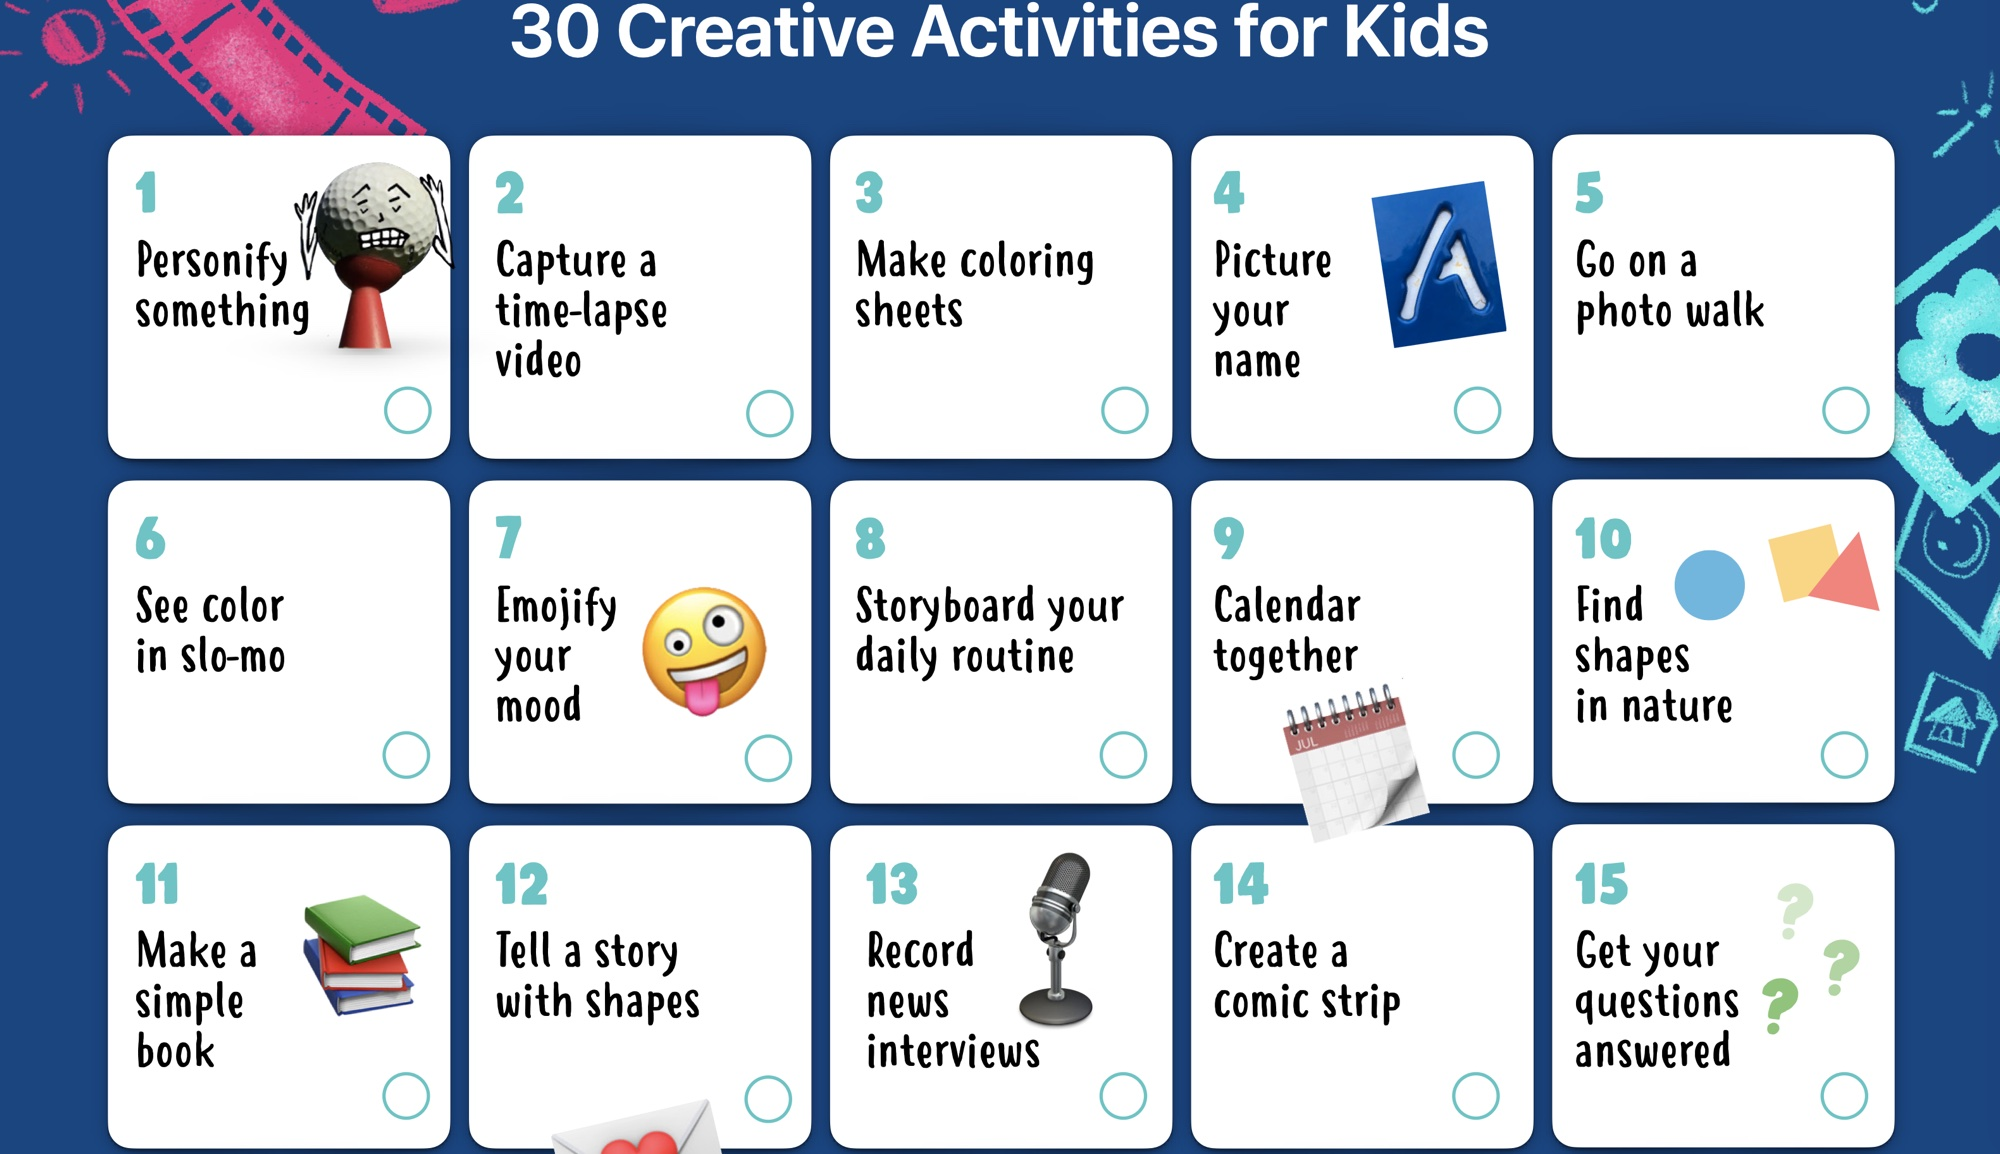 photo of Apple Shares Worksheet With 30 iPad Activities for Kids image